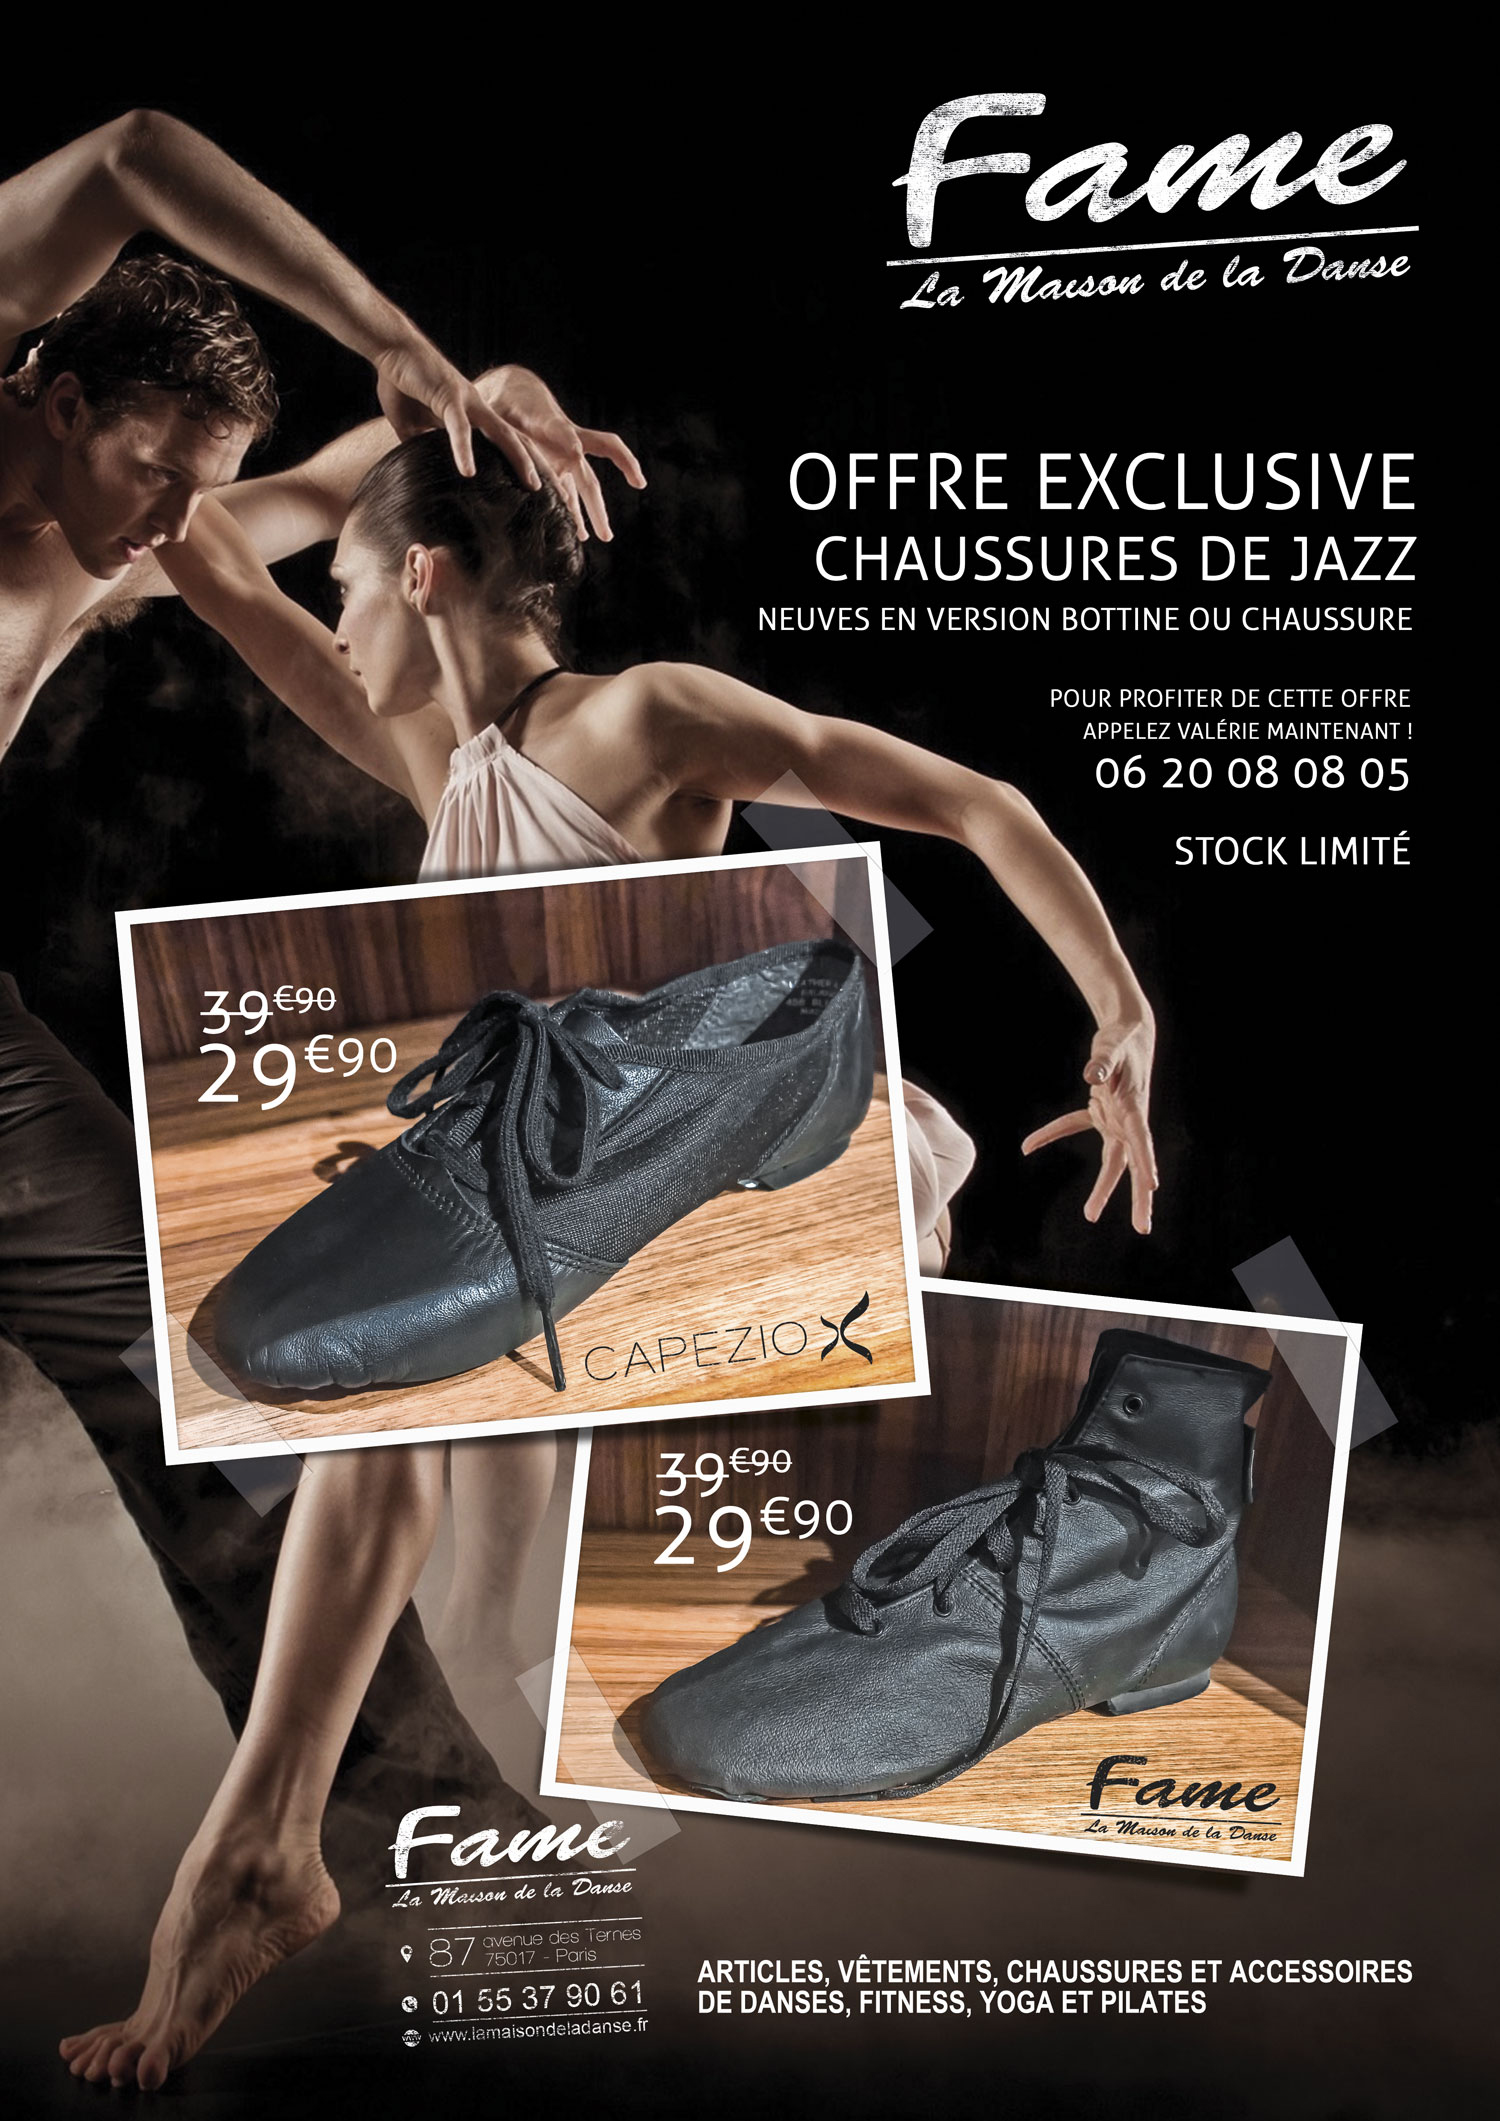 fame chaussures jazz A3